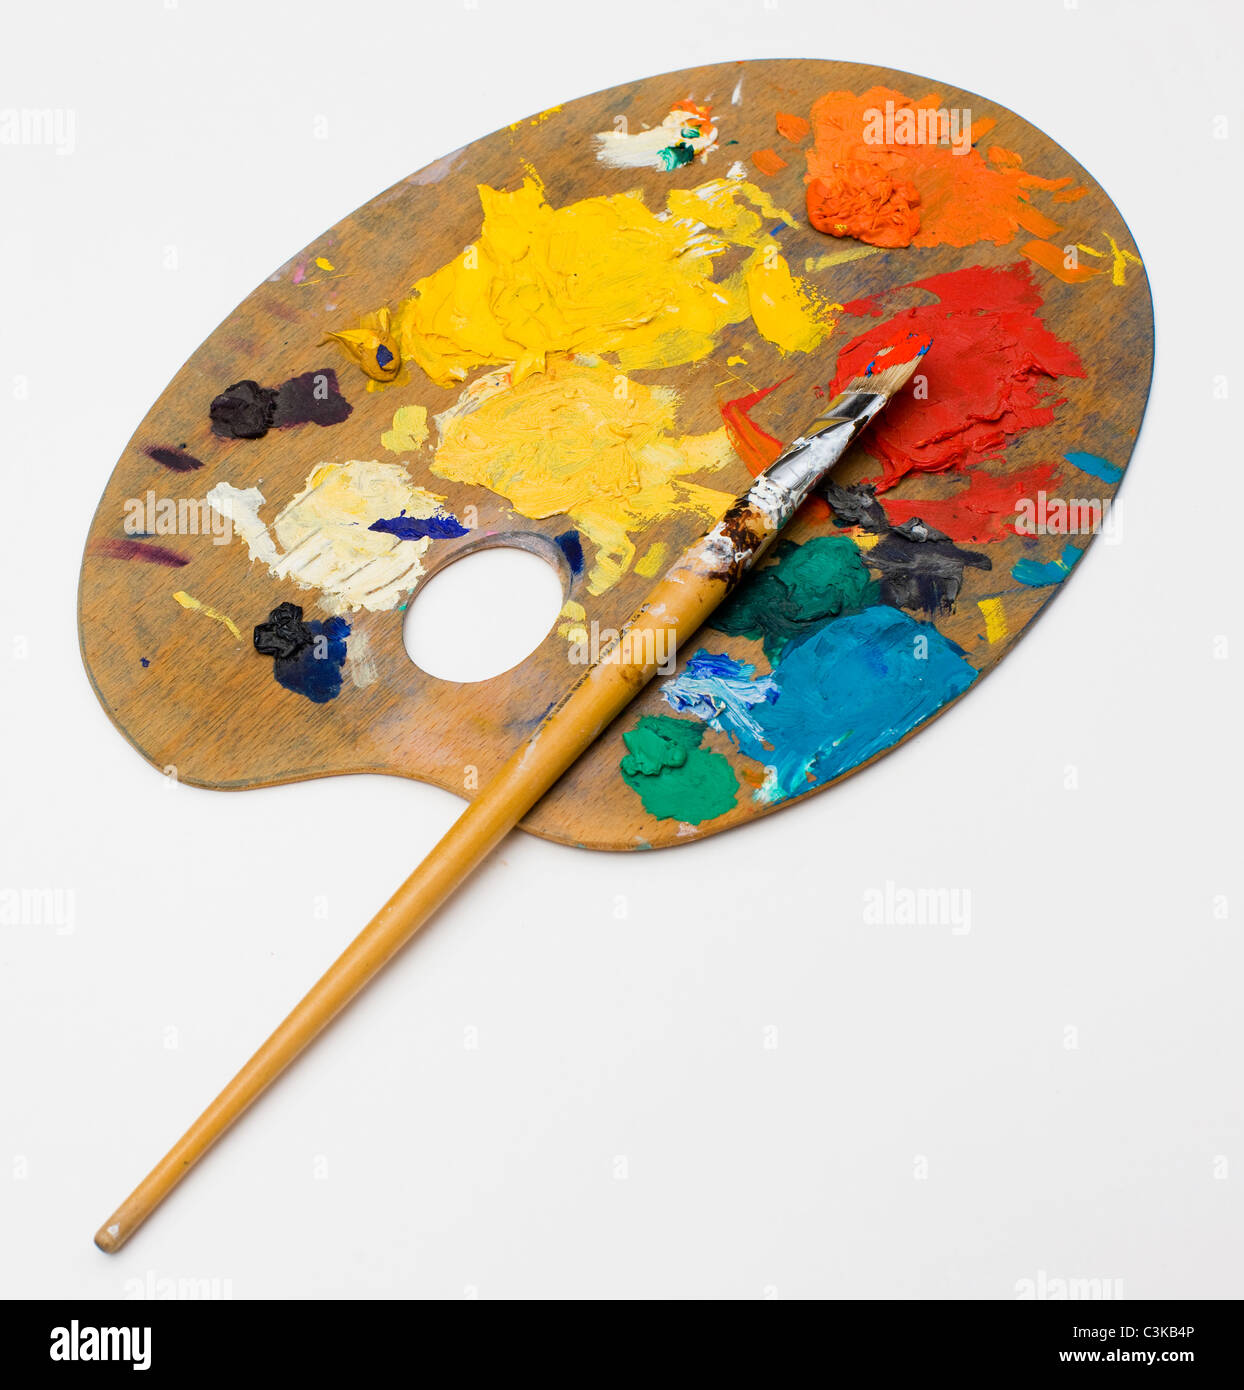 Paintbrush and palette, close-up Stock Photo